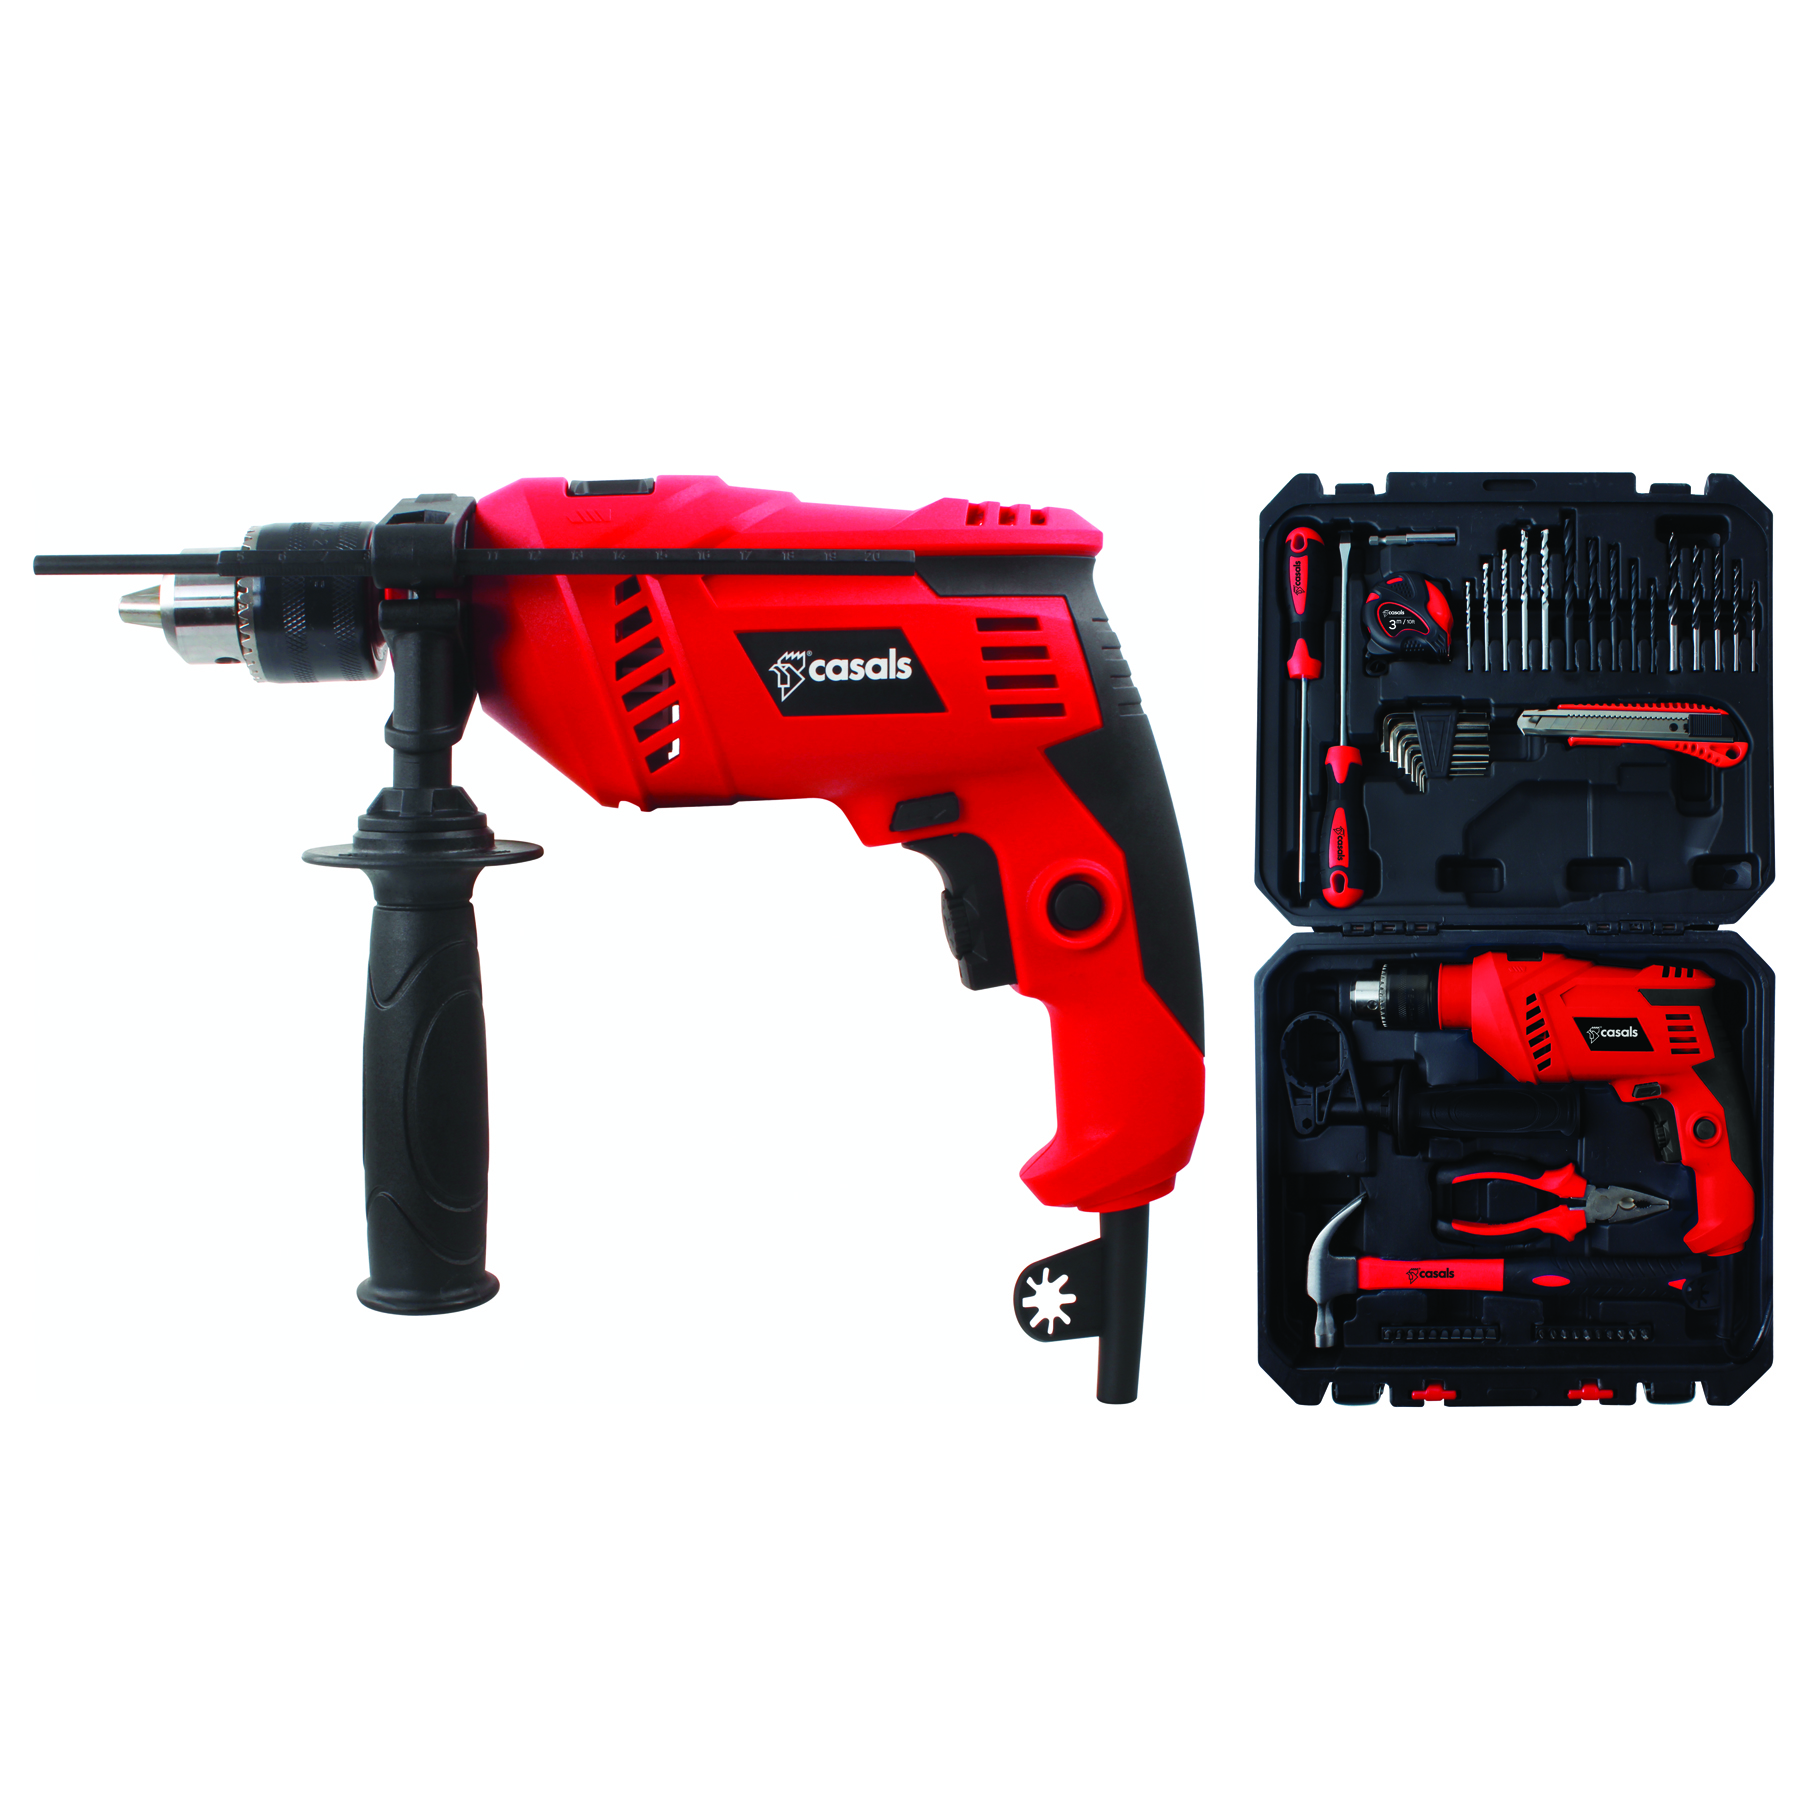 Casals Drill Impact Plastic Red 50pc Accessory 13mm Variable Speed